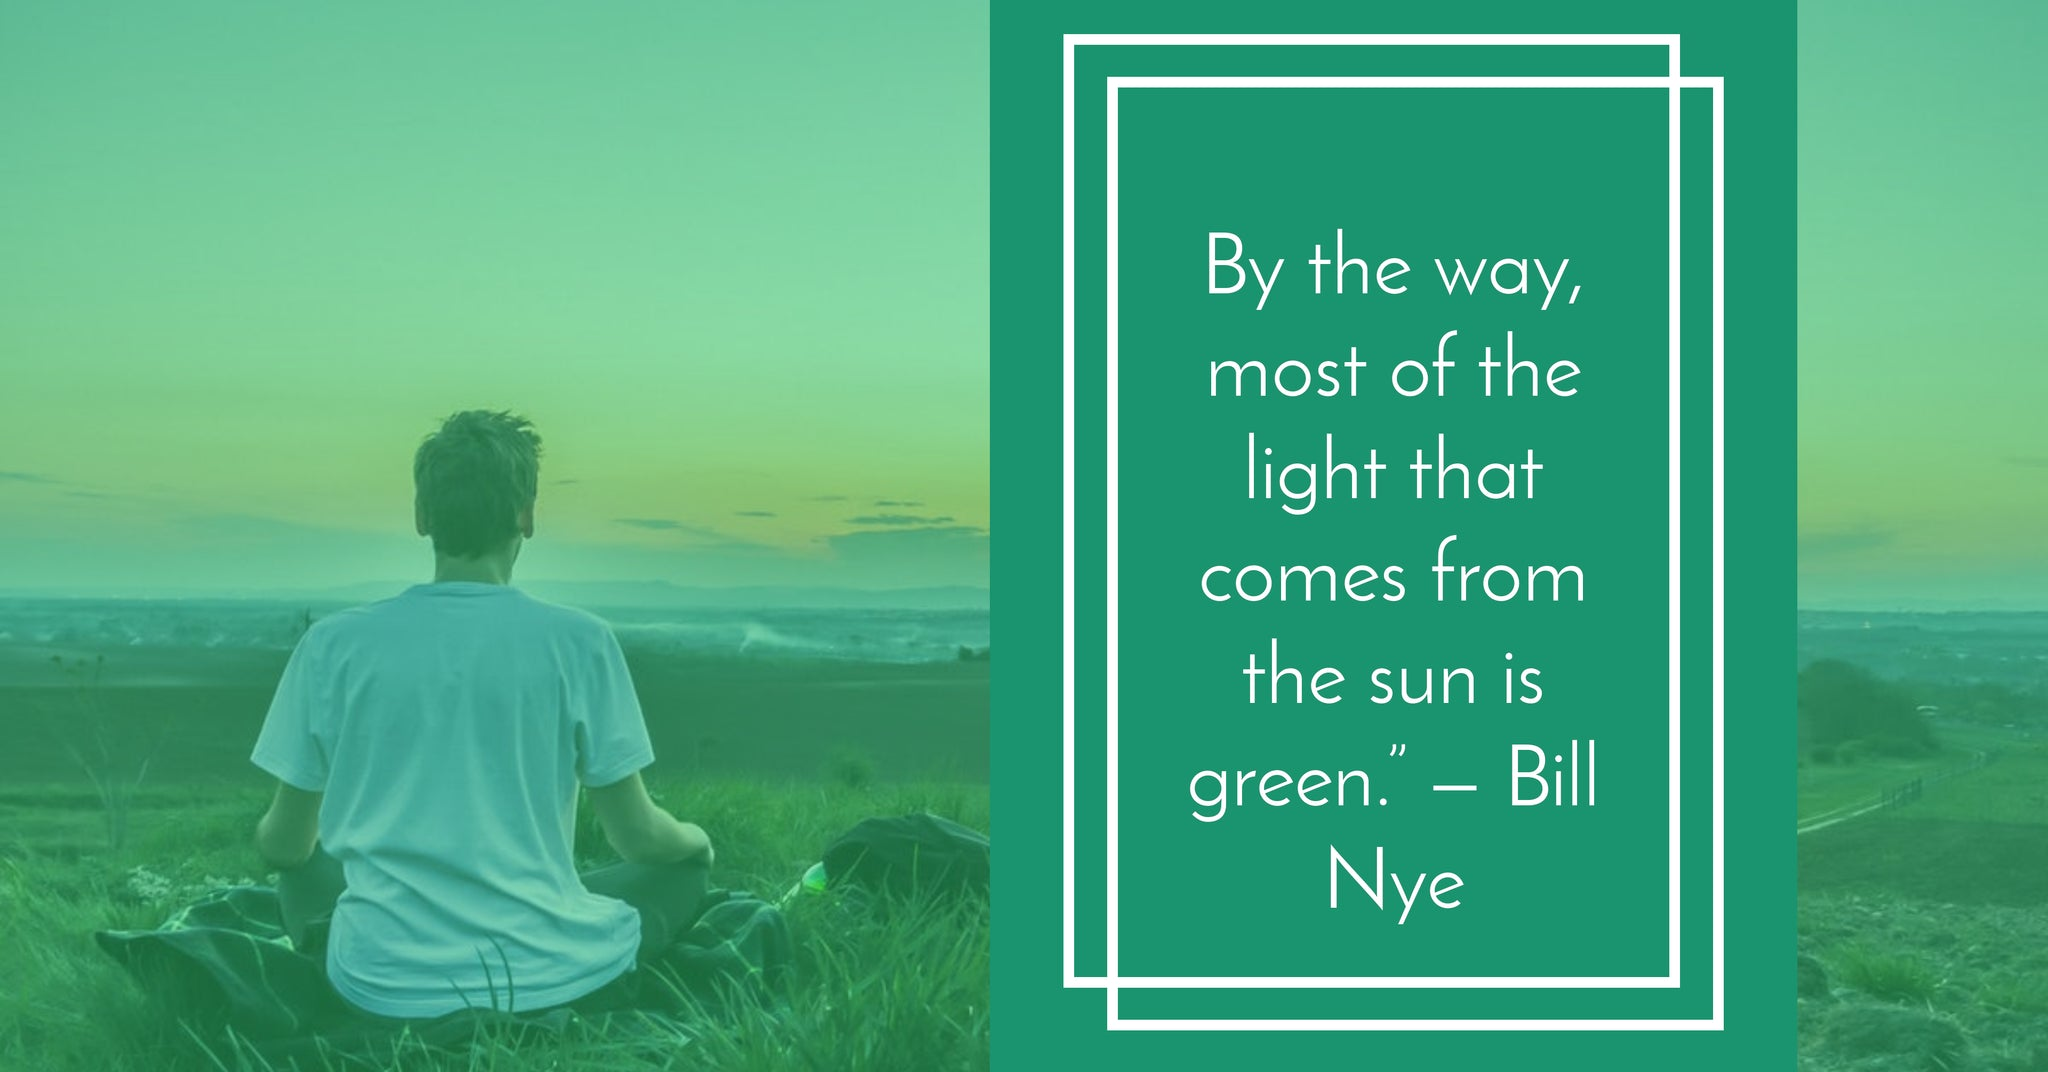 """By the way, most of the light that comes from the sun is green."" Bill Nye"